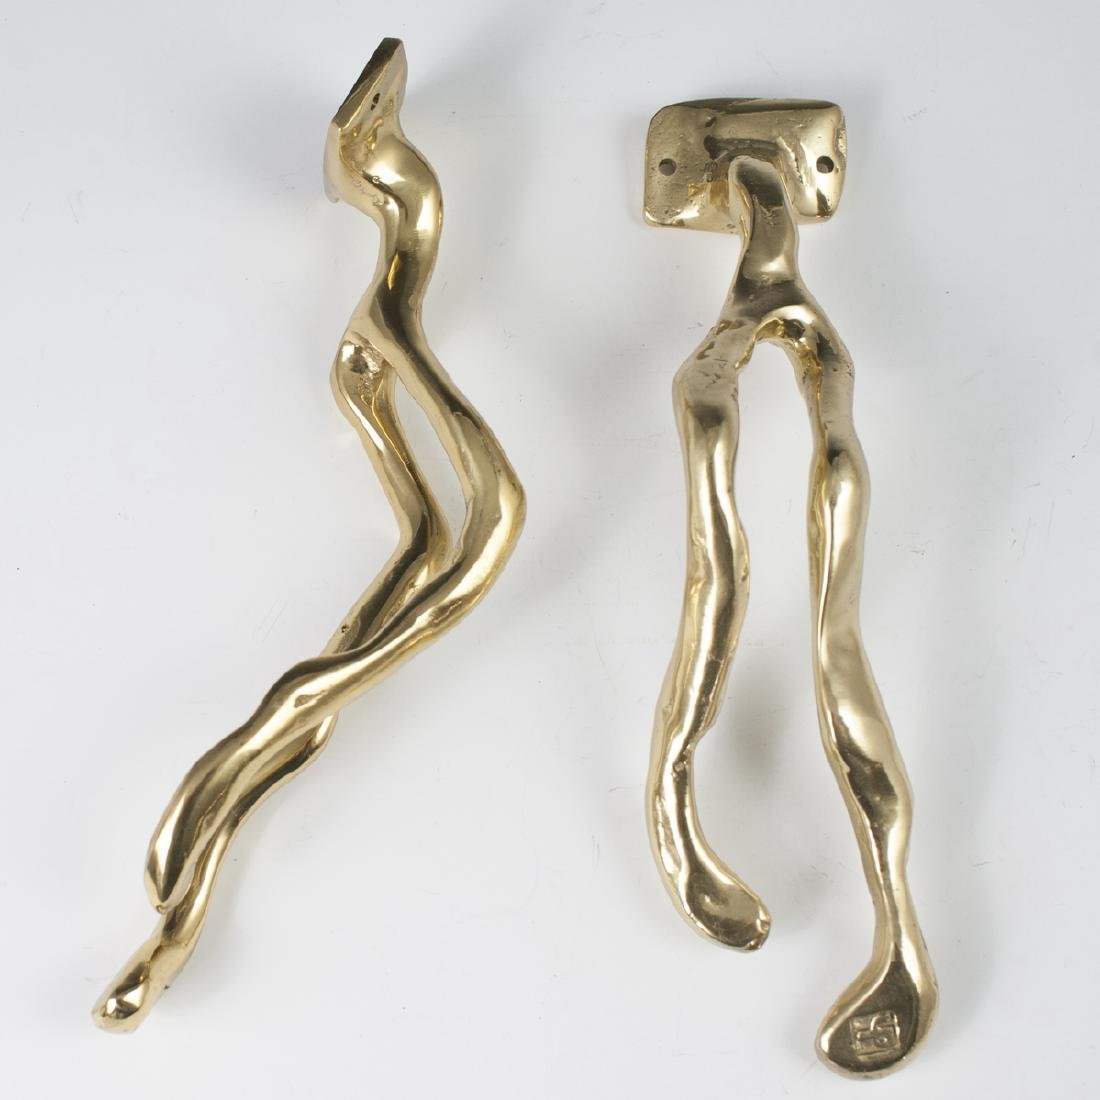 David Marshall Brass Towel Hangers - 3